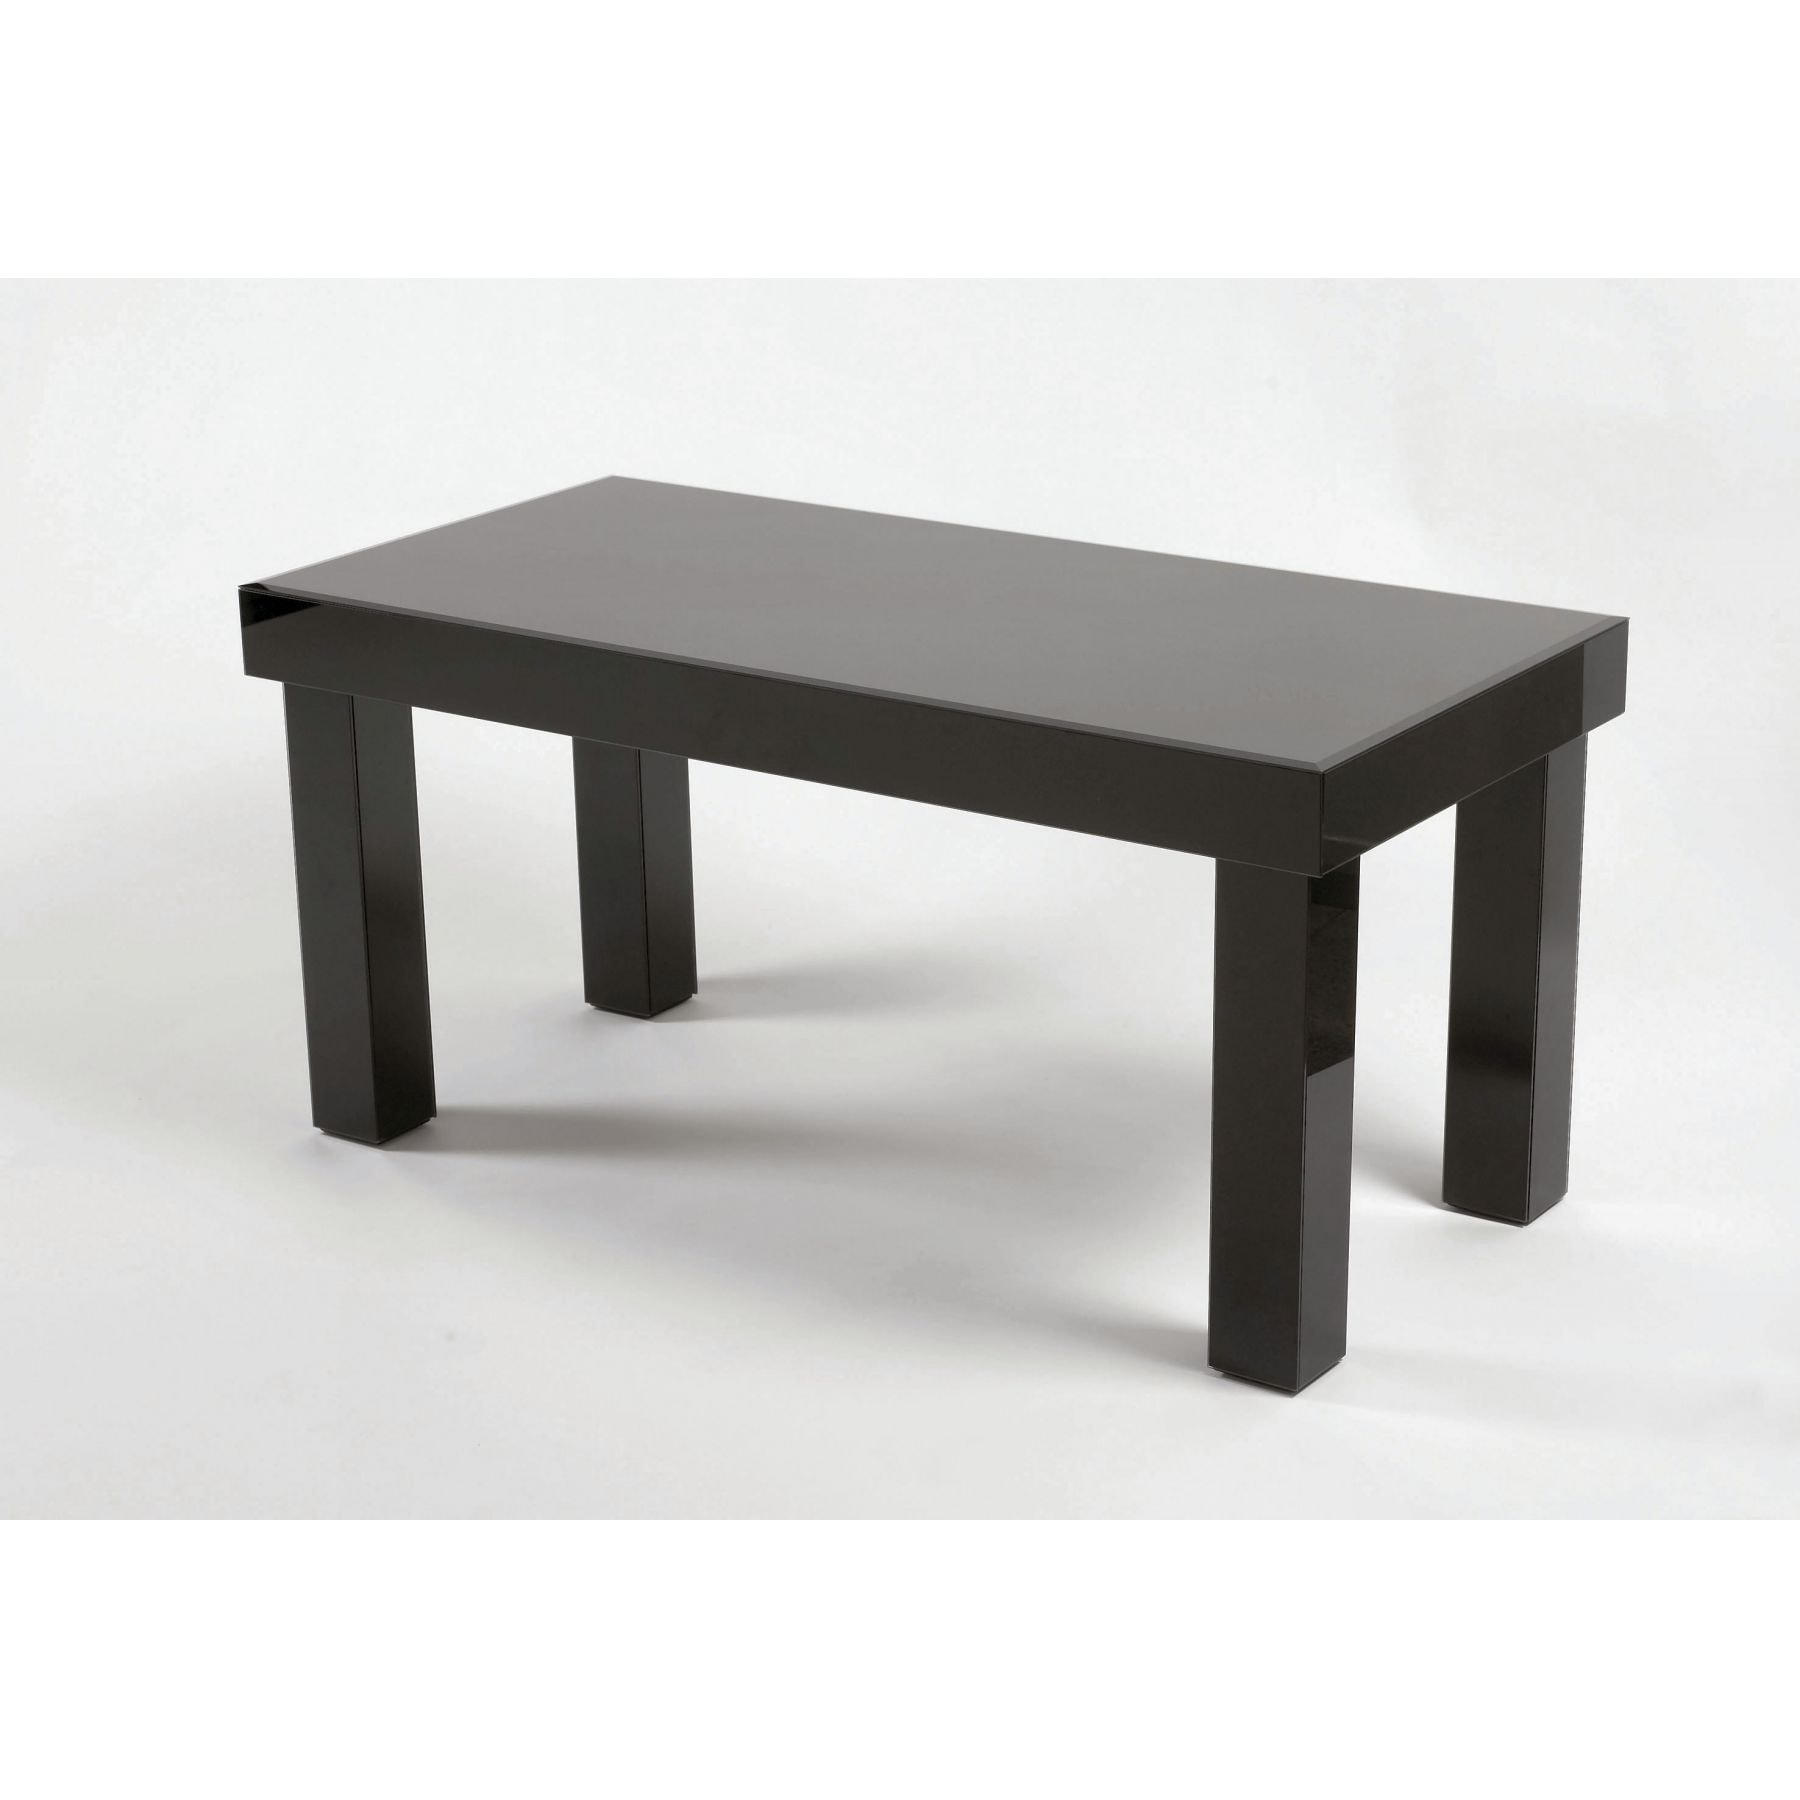 Black Glass Coffee Table 2 Glass Furniture From Homesdirect 365 Uk